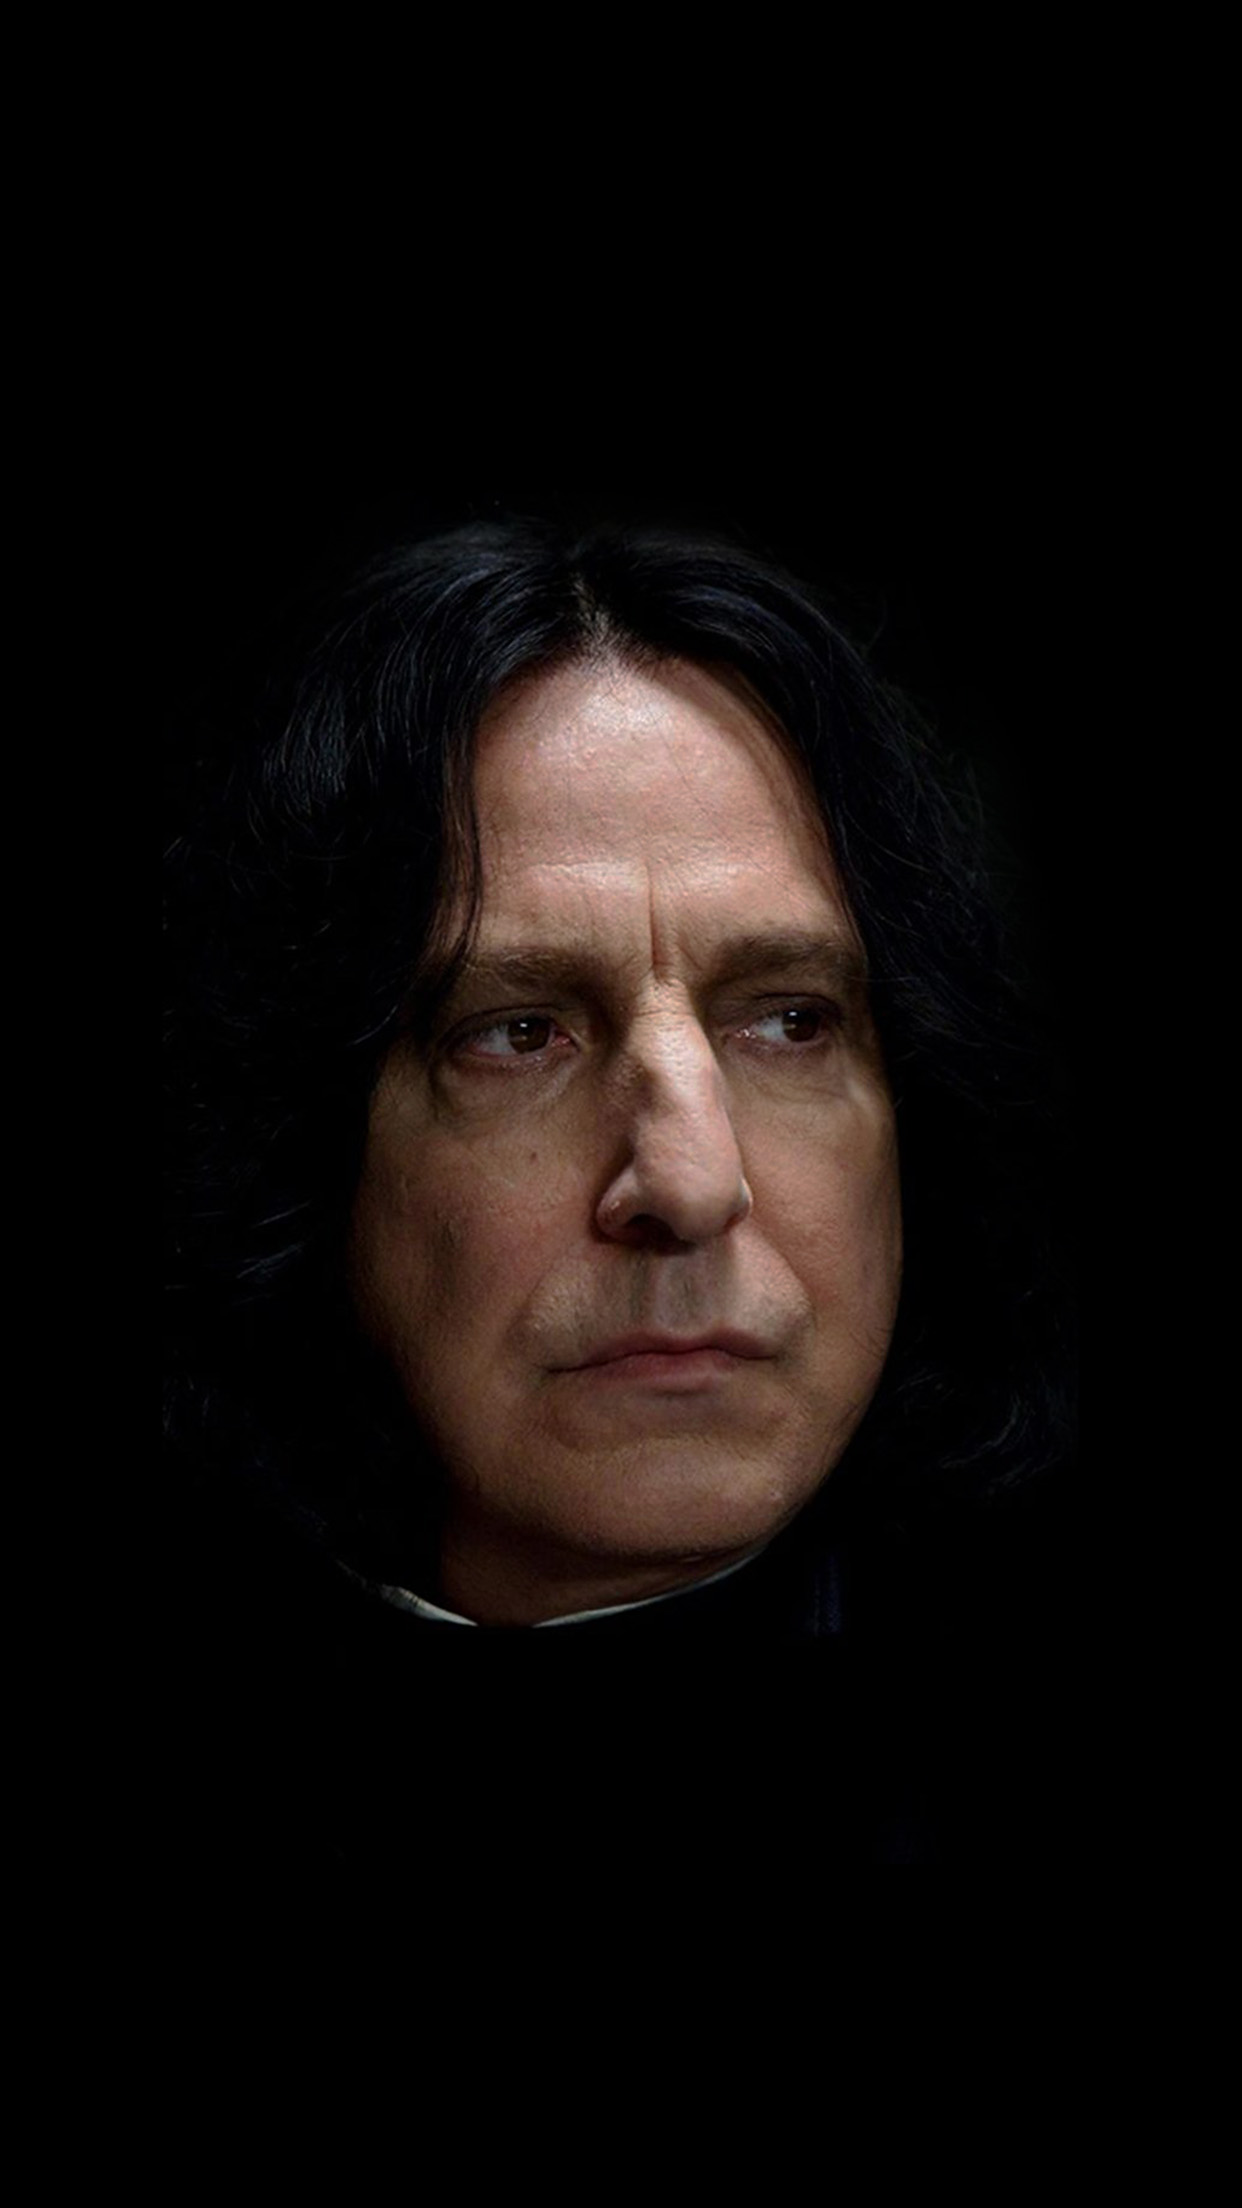 Michael Jackson Hd Wallpapers For Iphone 6 Hh31 Snape Harry Potter Alan Rickman Rip Dark Papers Co